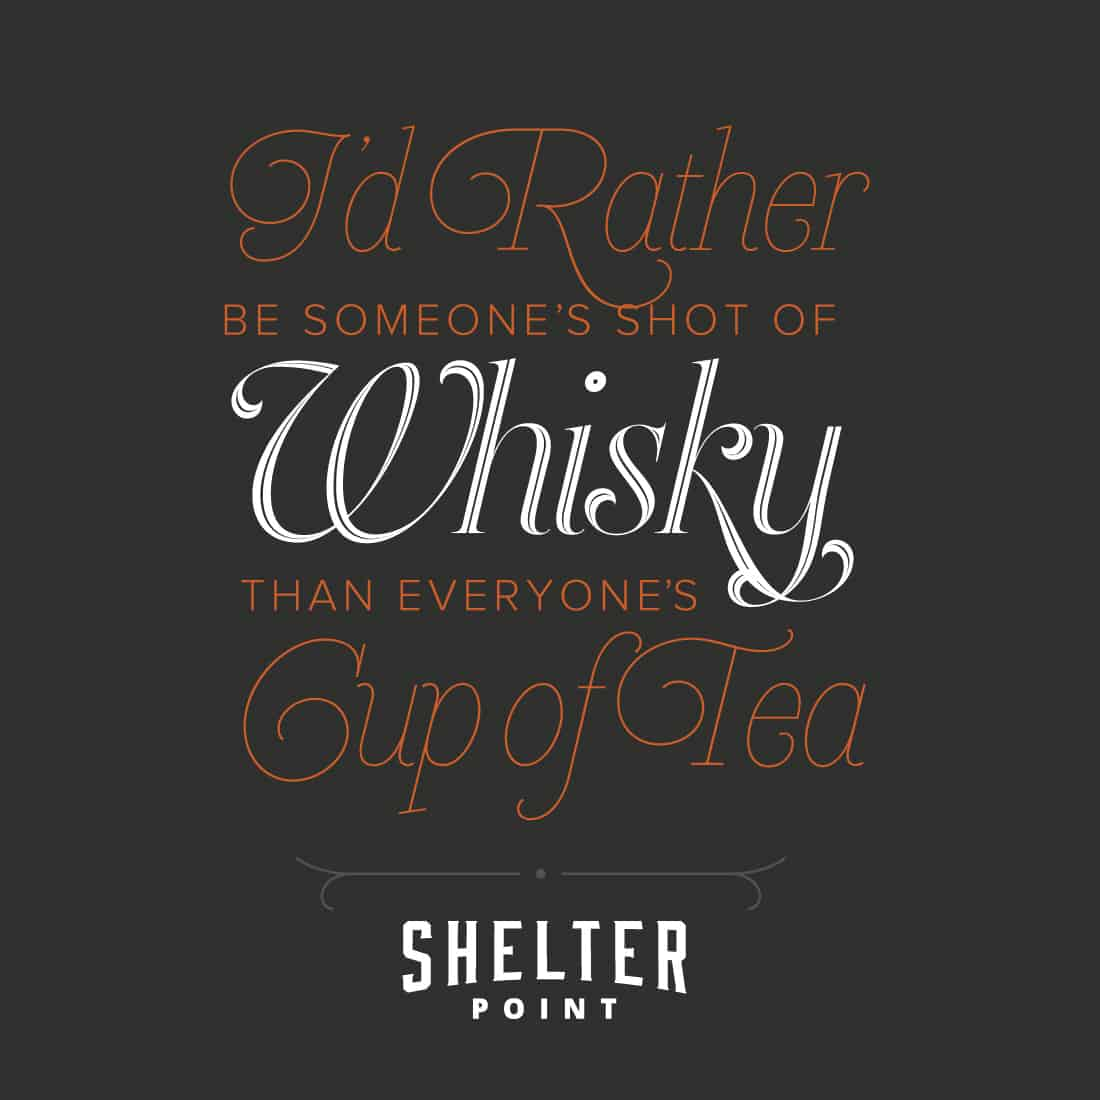 I'd rather be someone's shot of whisky than everyone's cup of tea